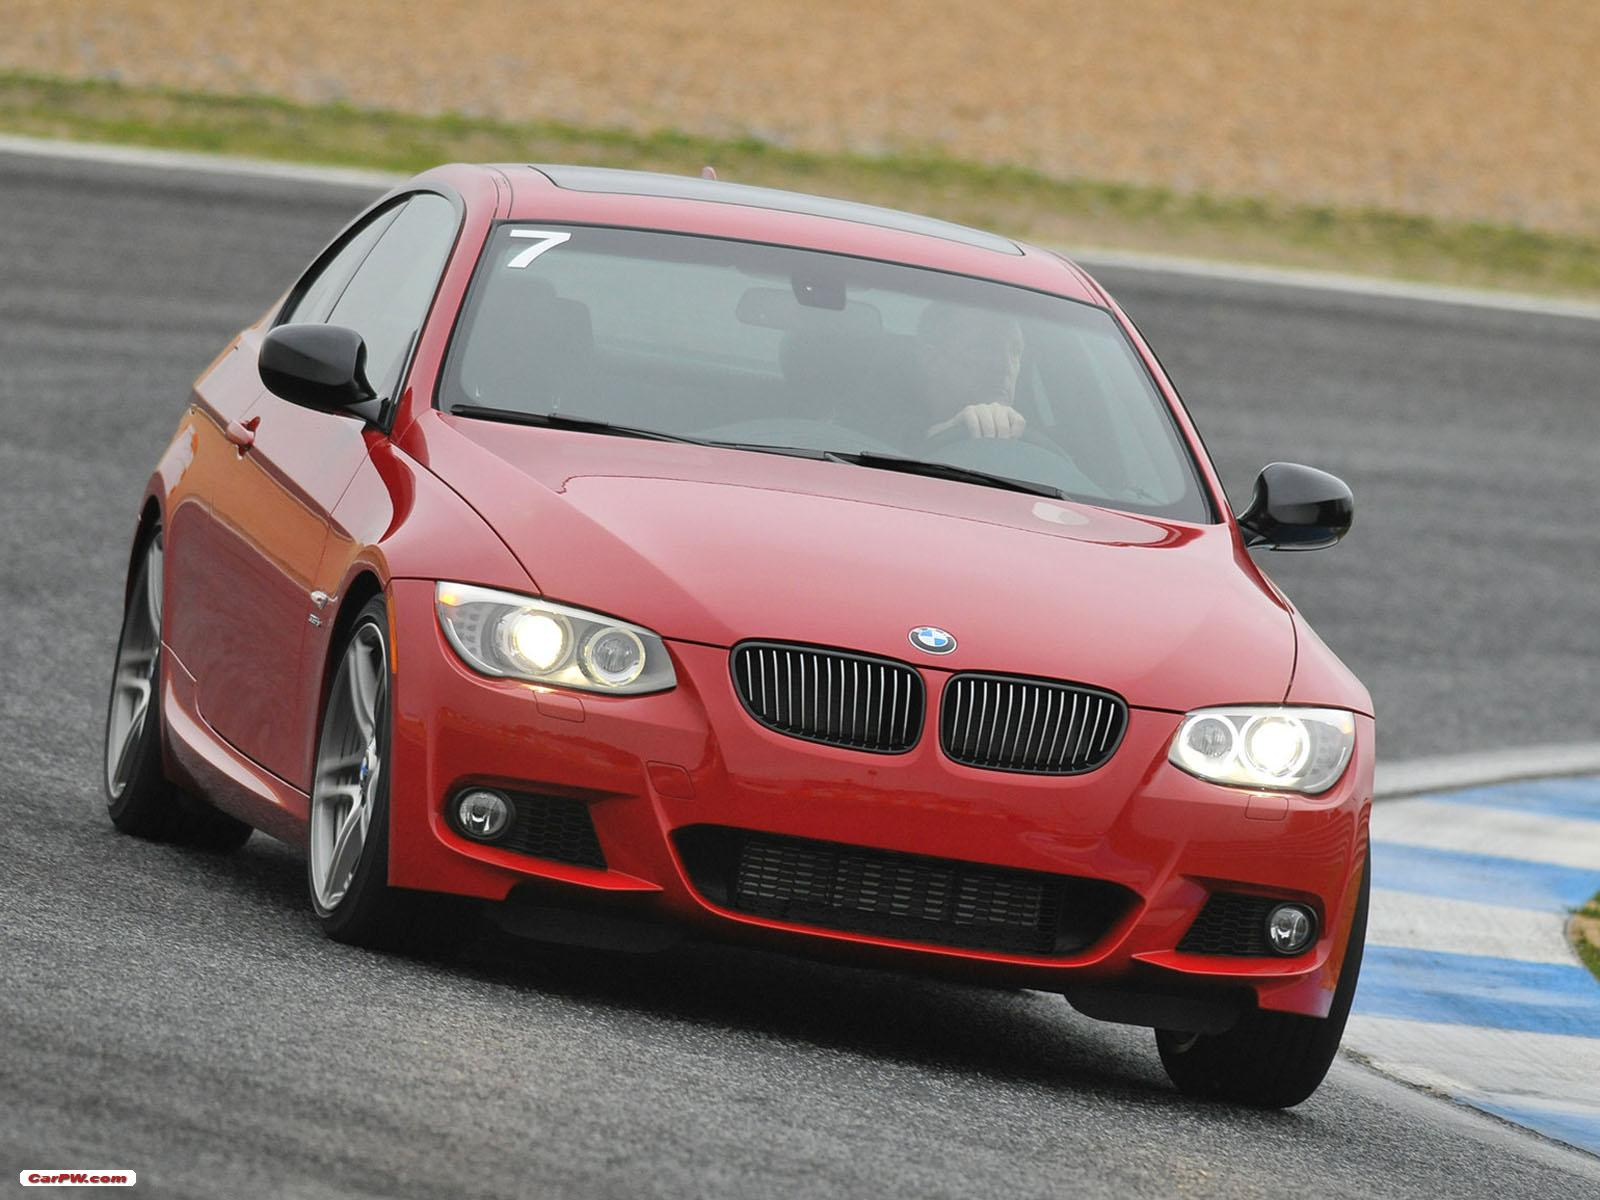 BMW 3 series 335is 2011 photo - 3